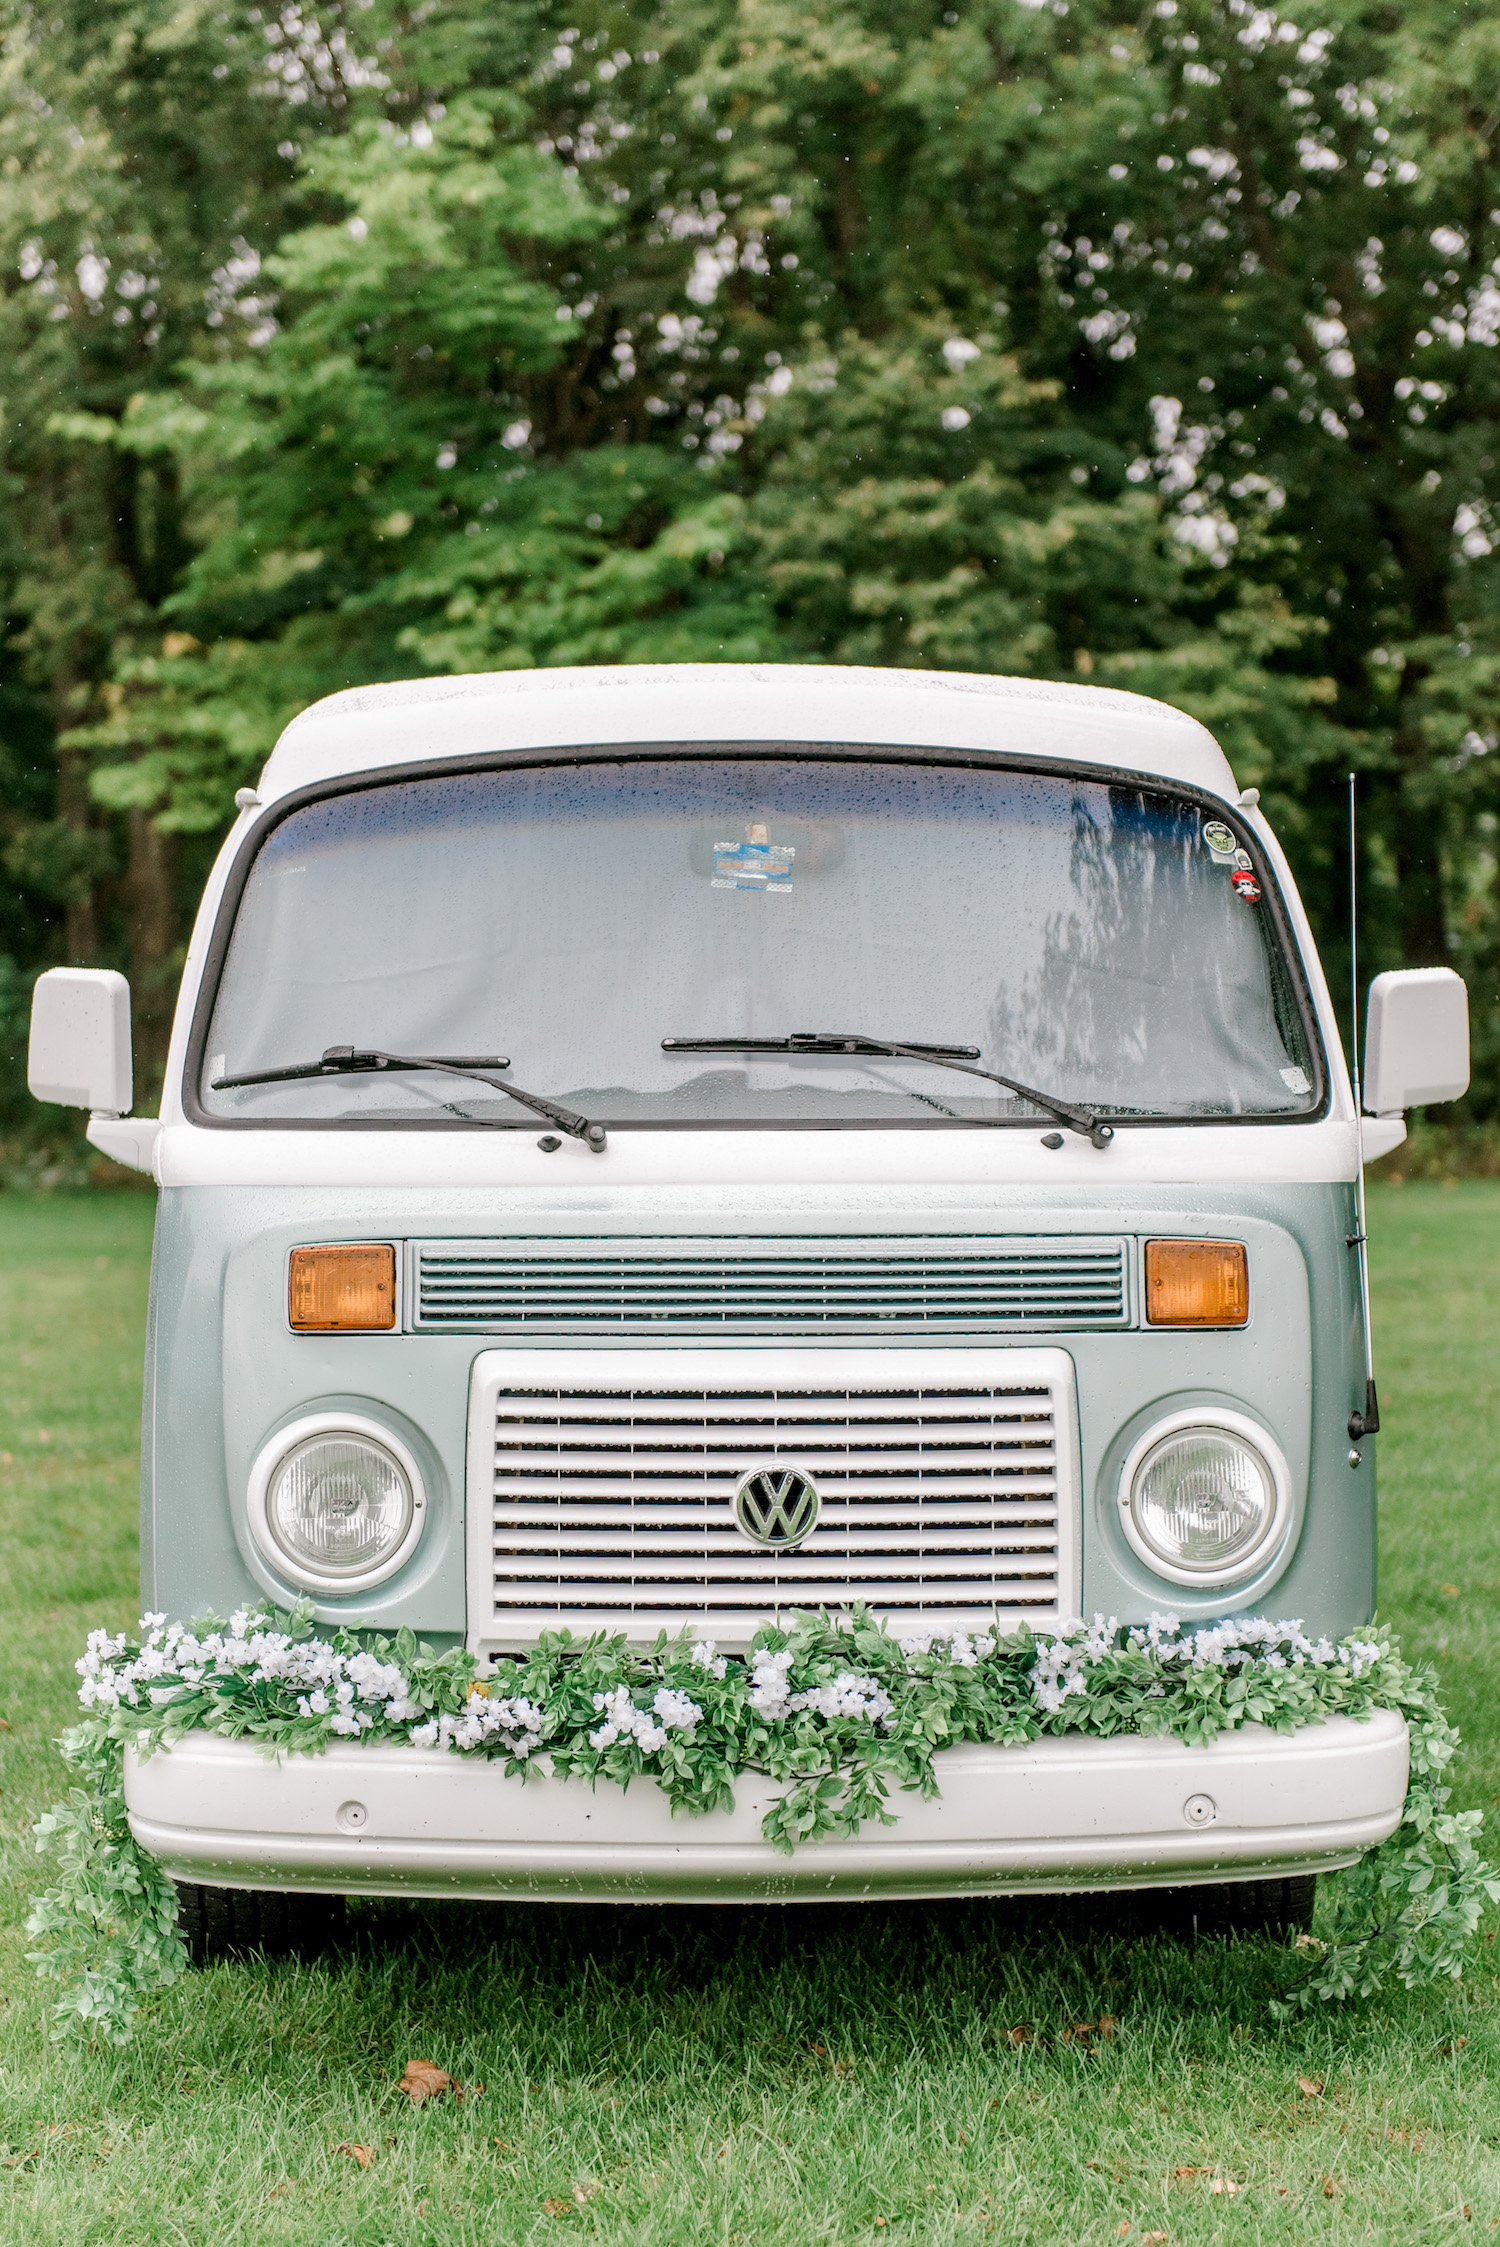 Old van with florals on the bumper for Wallinwood Springs Golf Course wedding